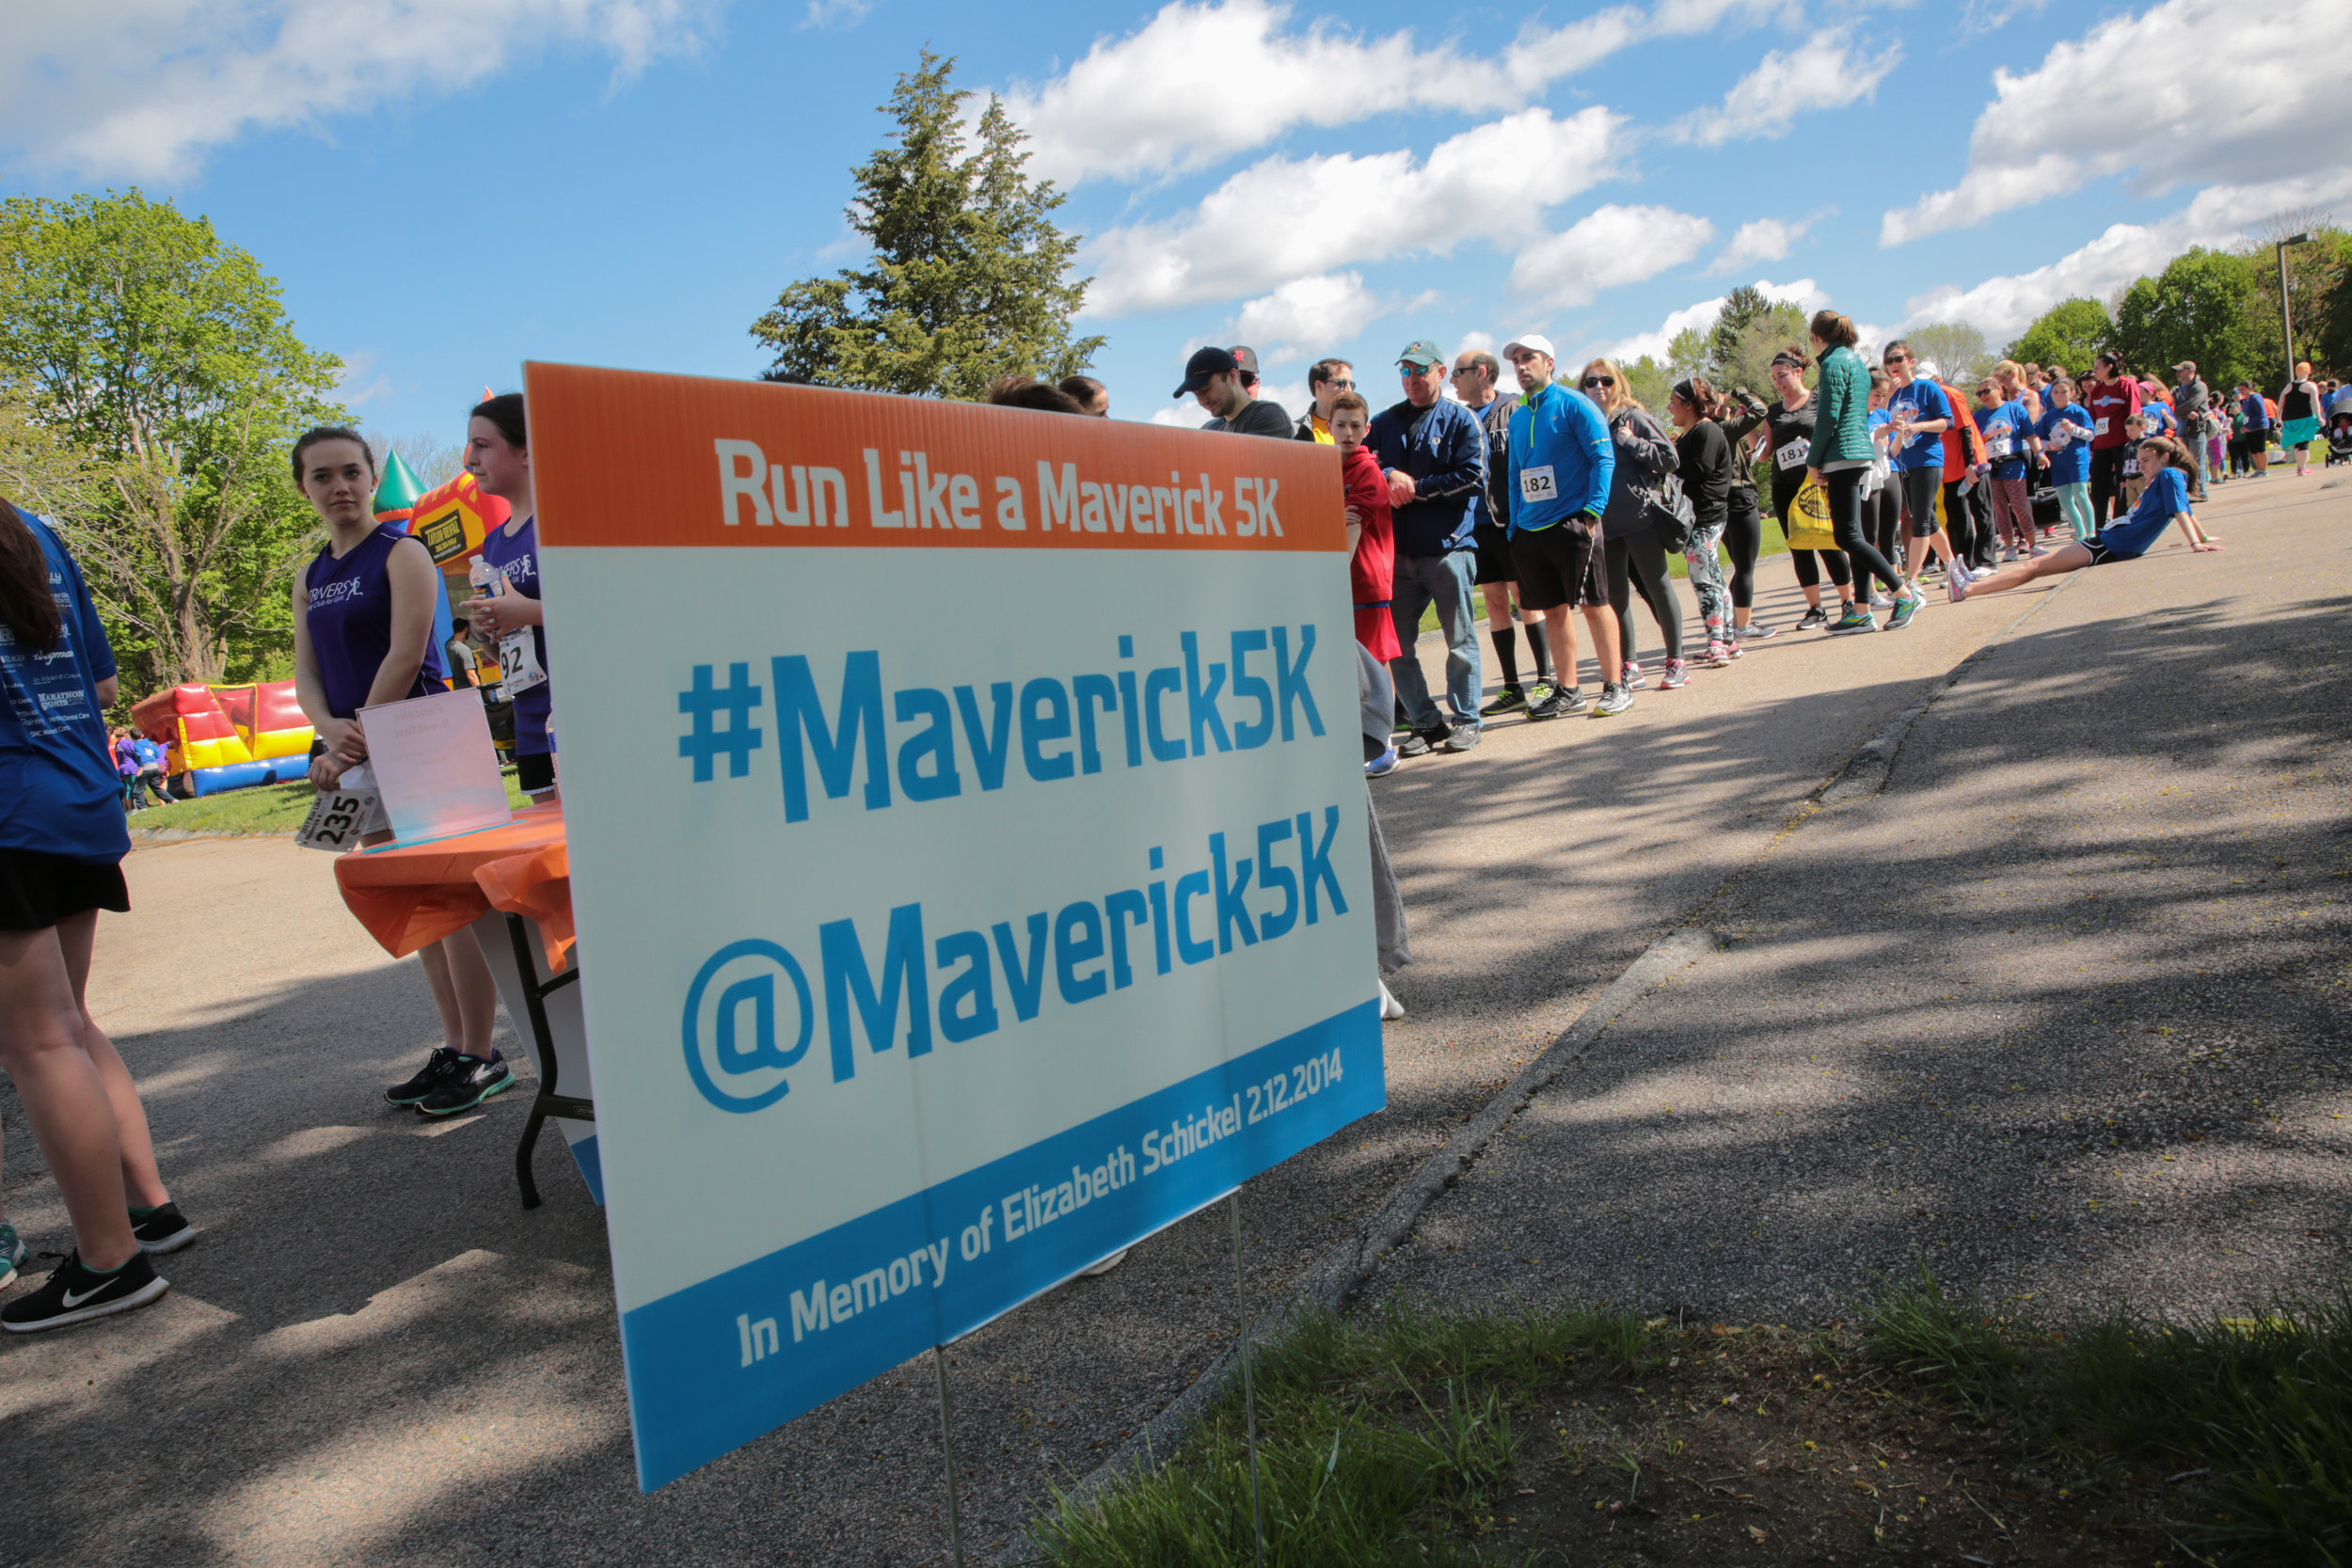 20170507MaverickRun2017_gm_0126.JPG